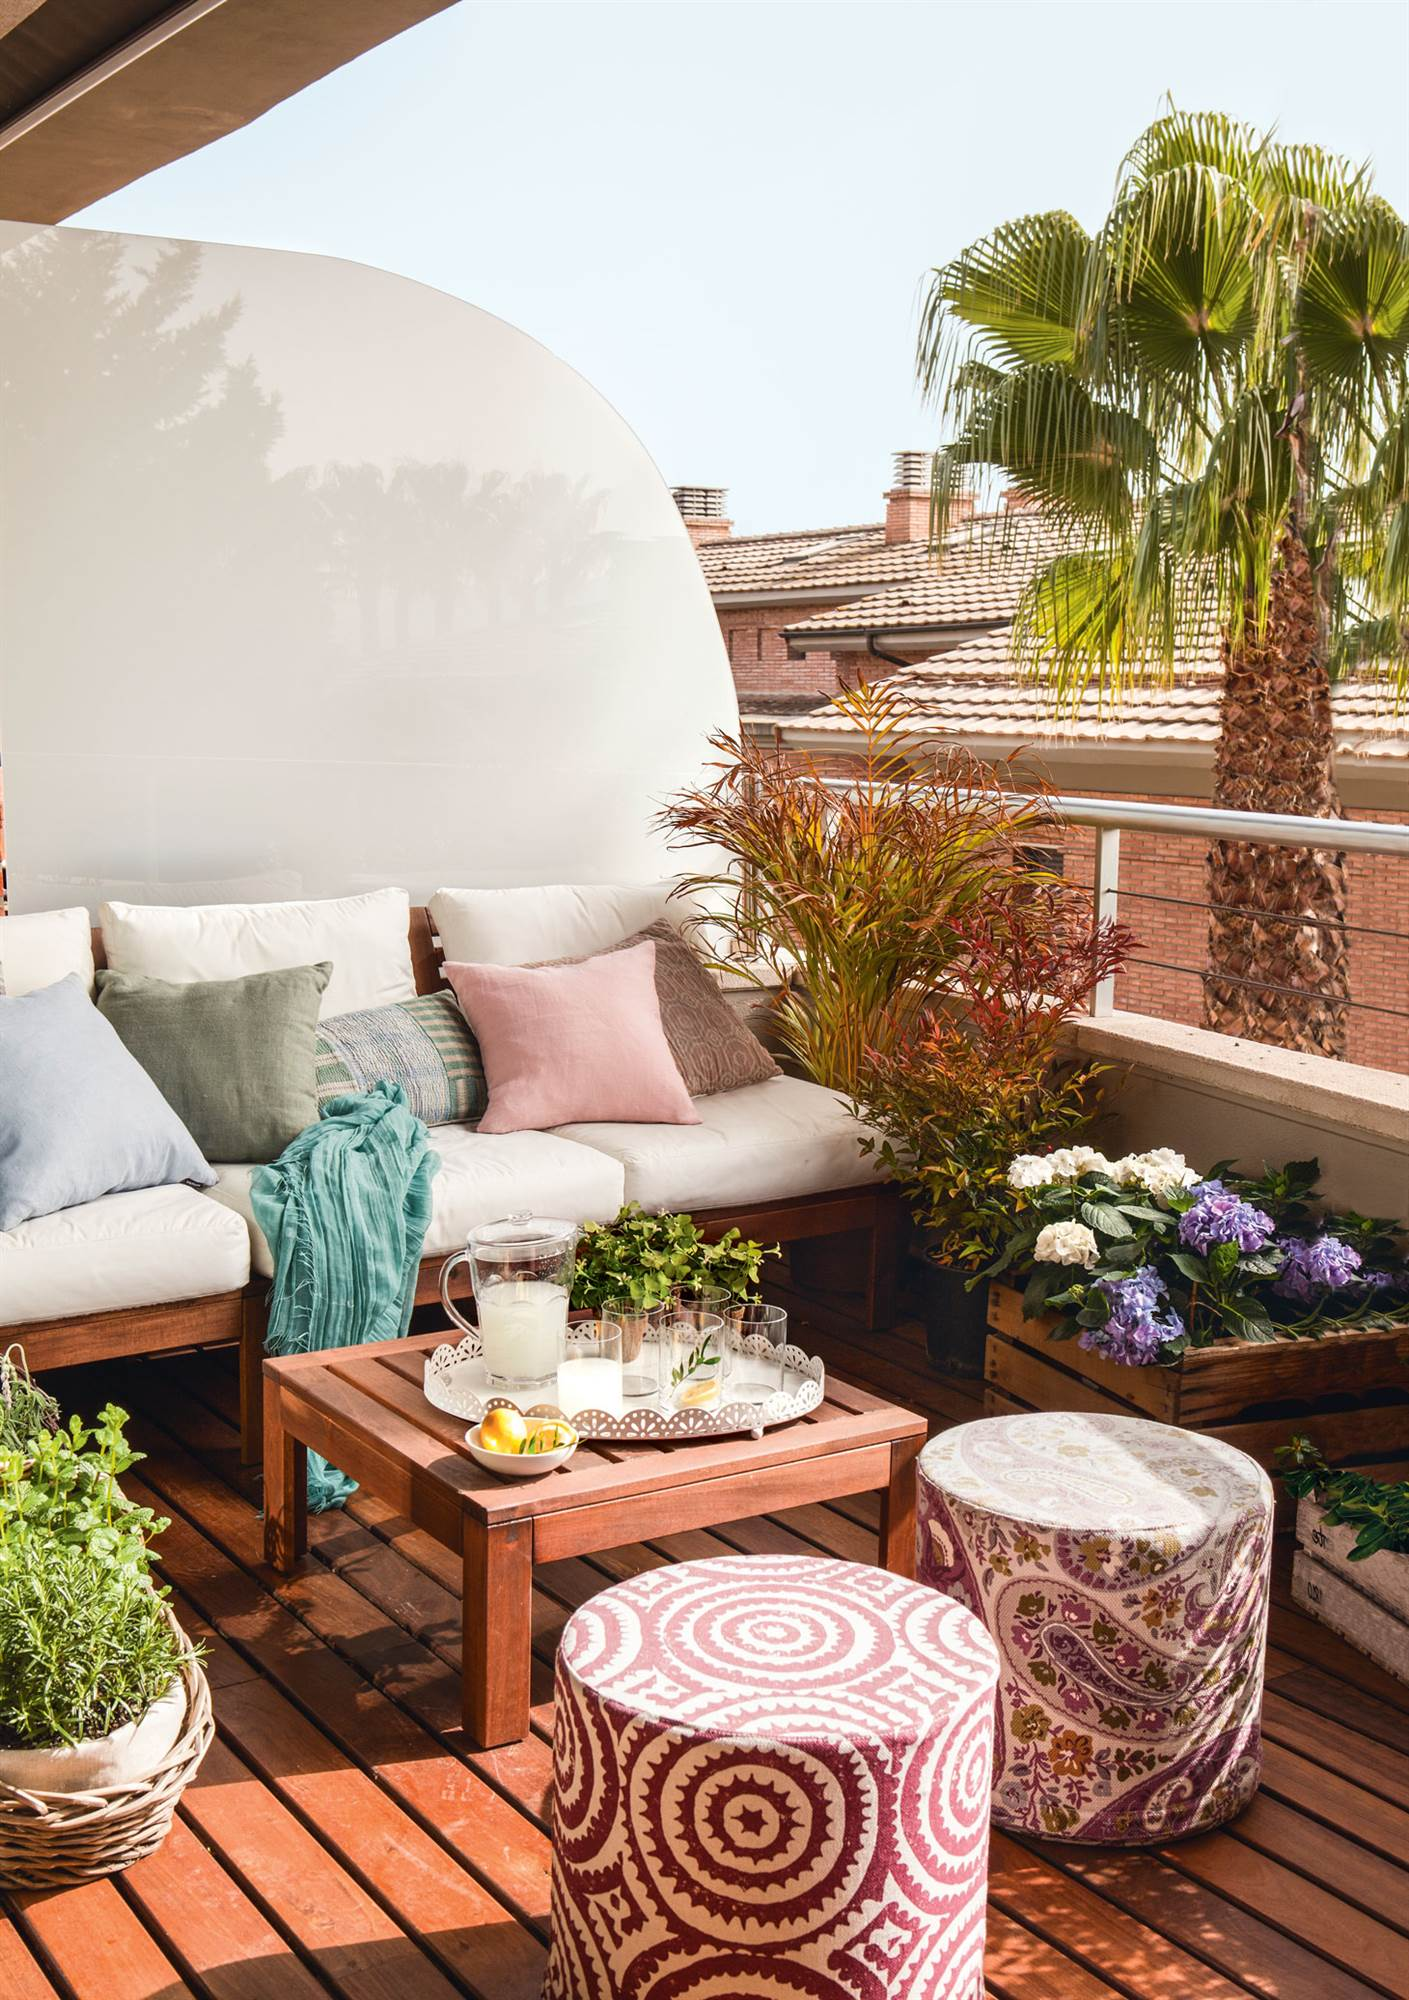 Patios chill out perfect moroccan inspired shaded covered outdoor chill out sitting area with Como decorar un patio